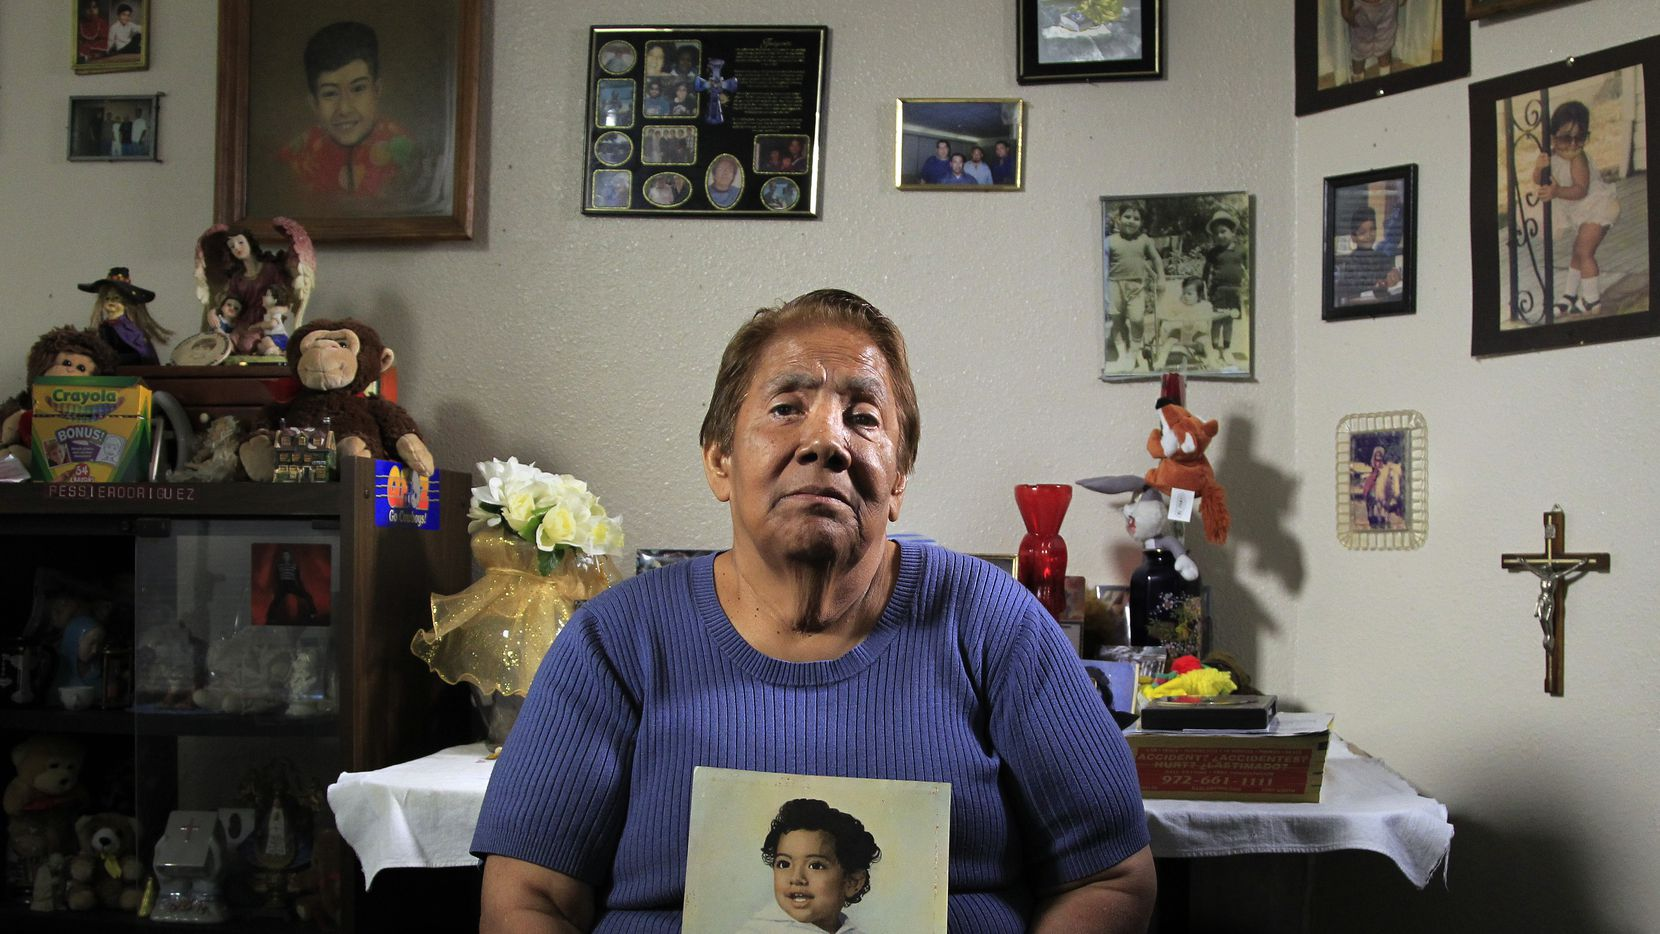 Bessie Rodriguez's 12-year-old son, Santos, was killed in 1973 by a Dallas police officer in an effort to force a confession.